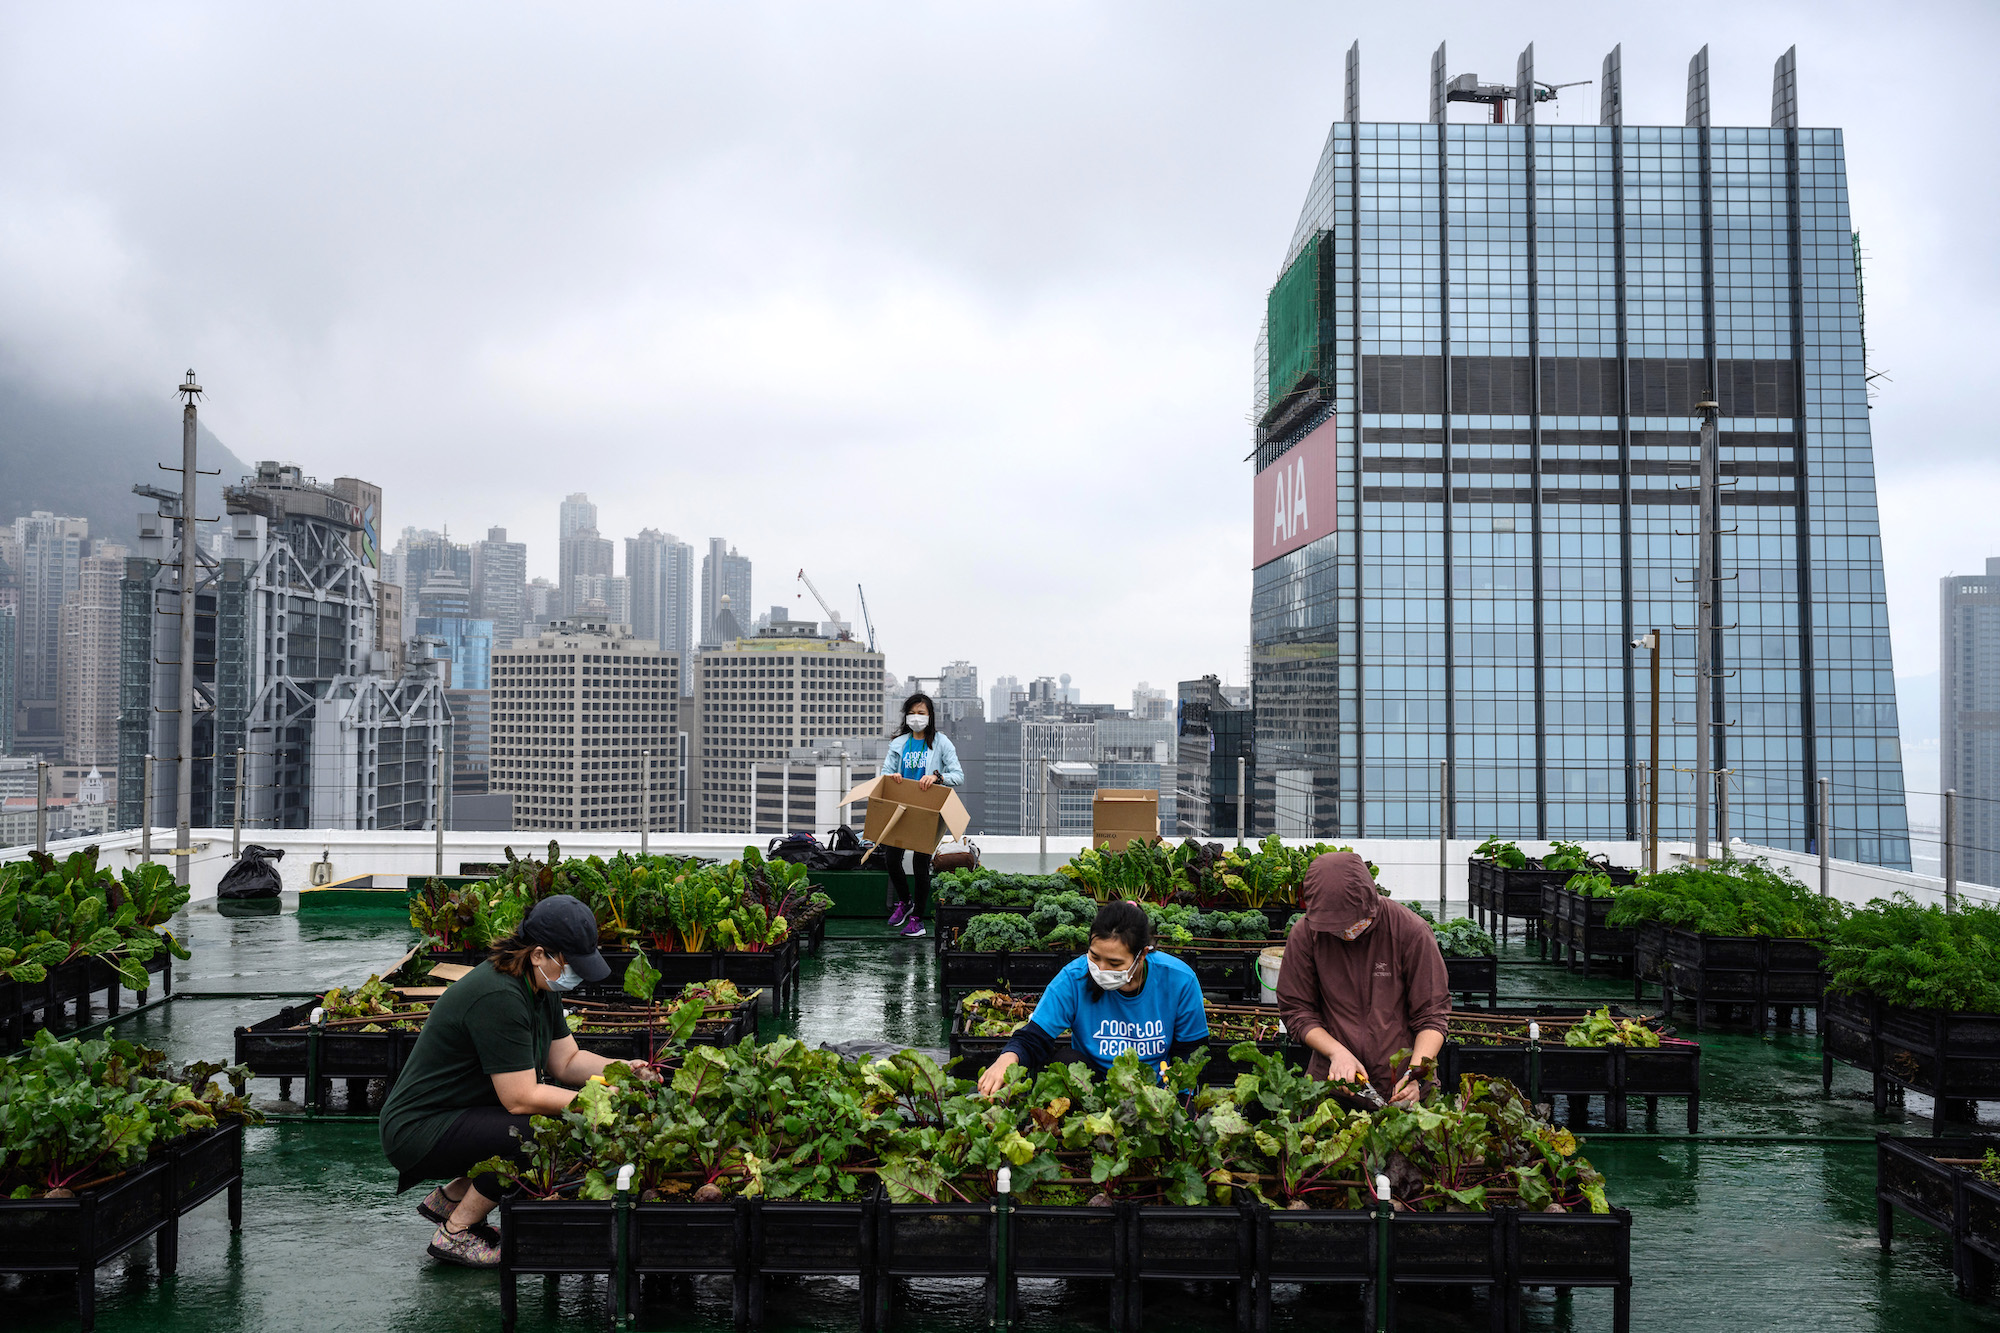 Sadly, not many Hong Kong citizens are interested in growing their own food